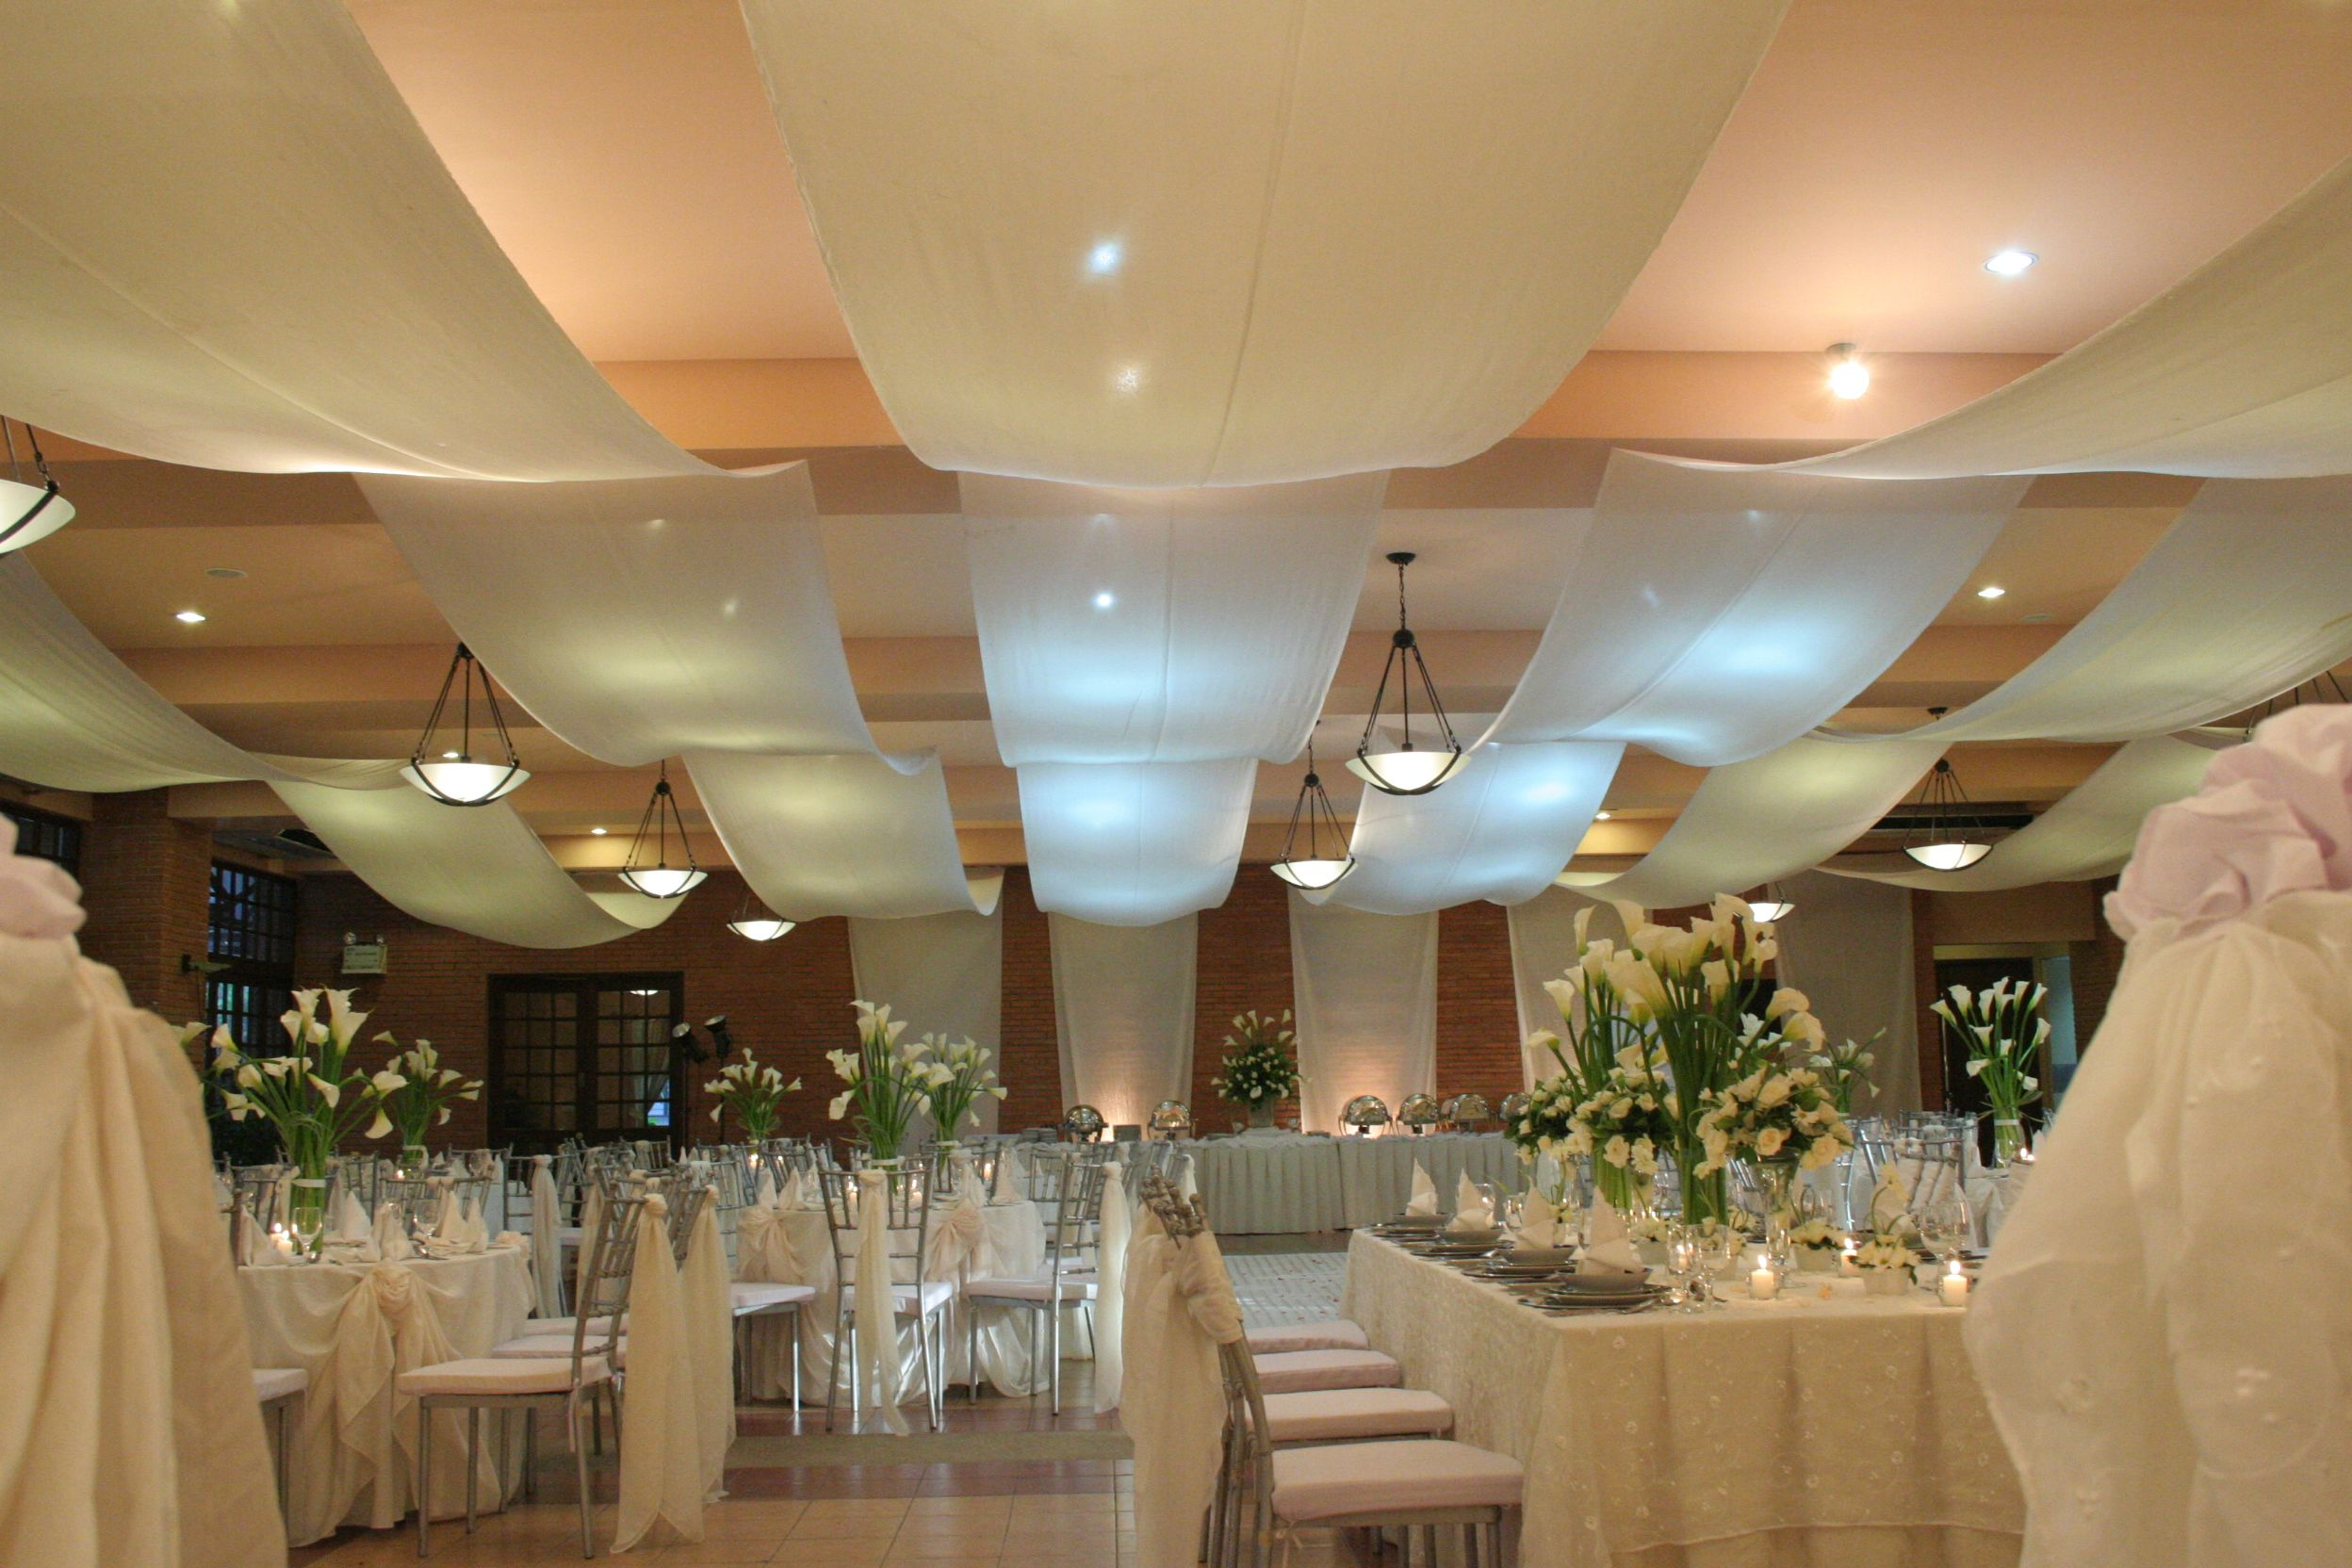 valley events decor sheer hang for ltd fabric lighting x how event draping tent ceiling and party rentals to globe drapes